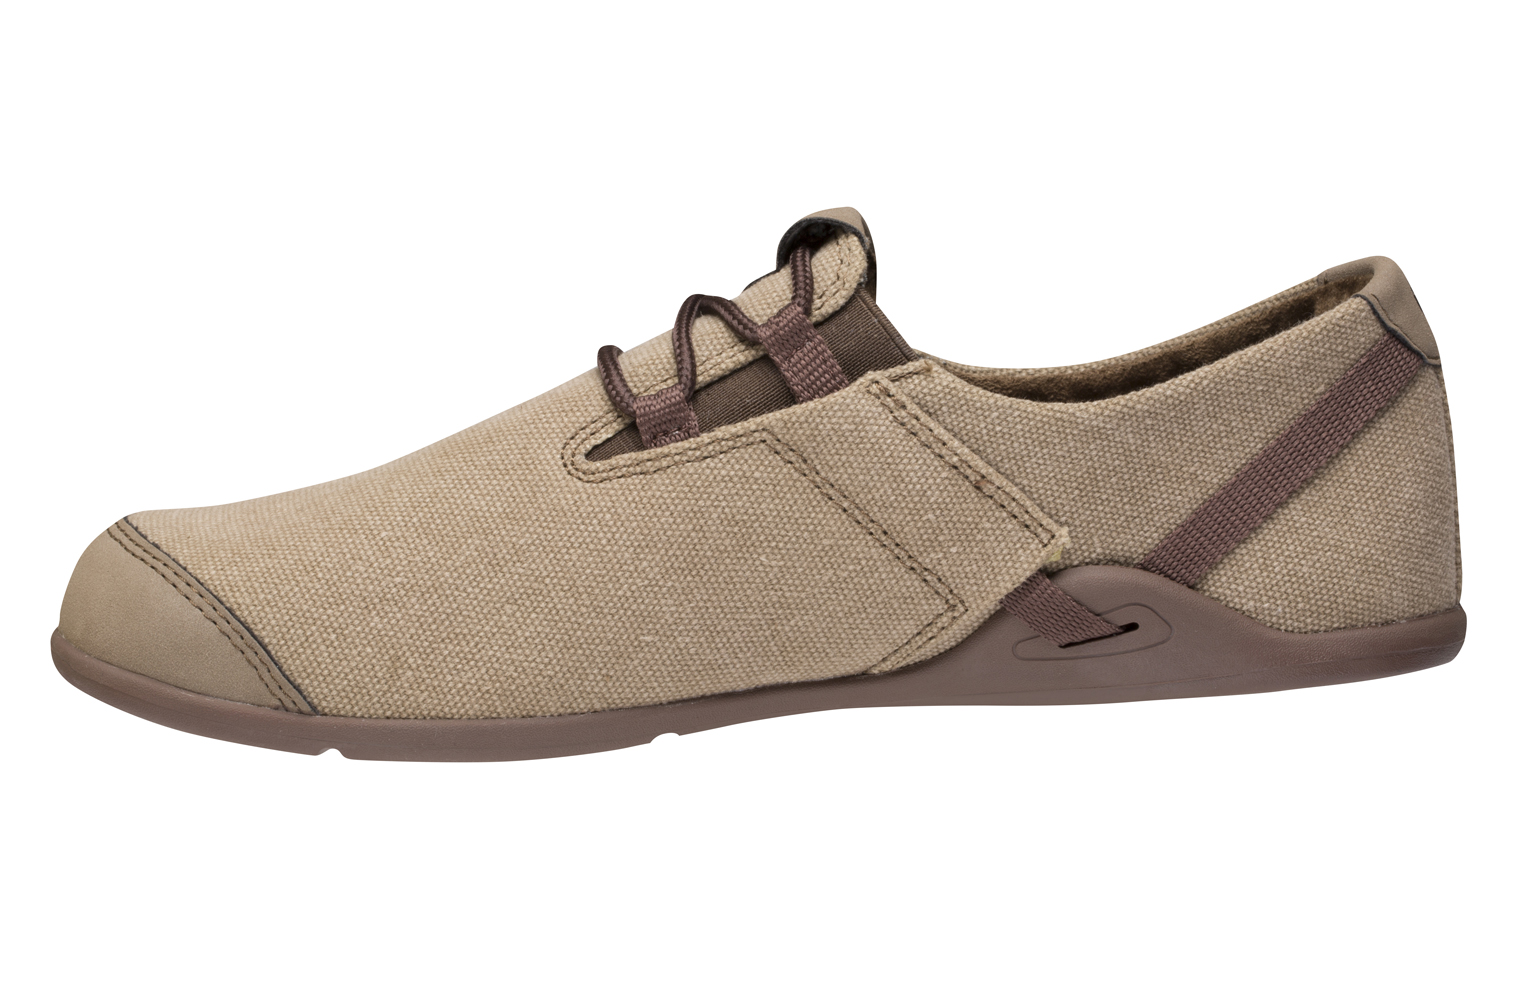 Womens Shoes With A Large Toe Box